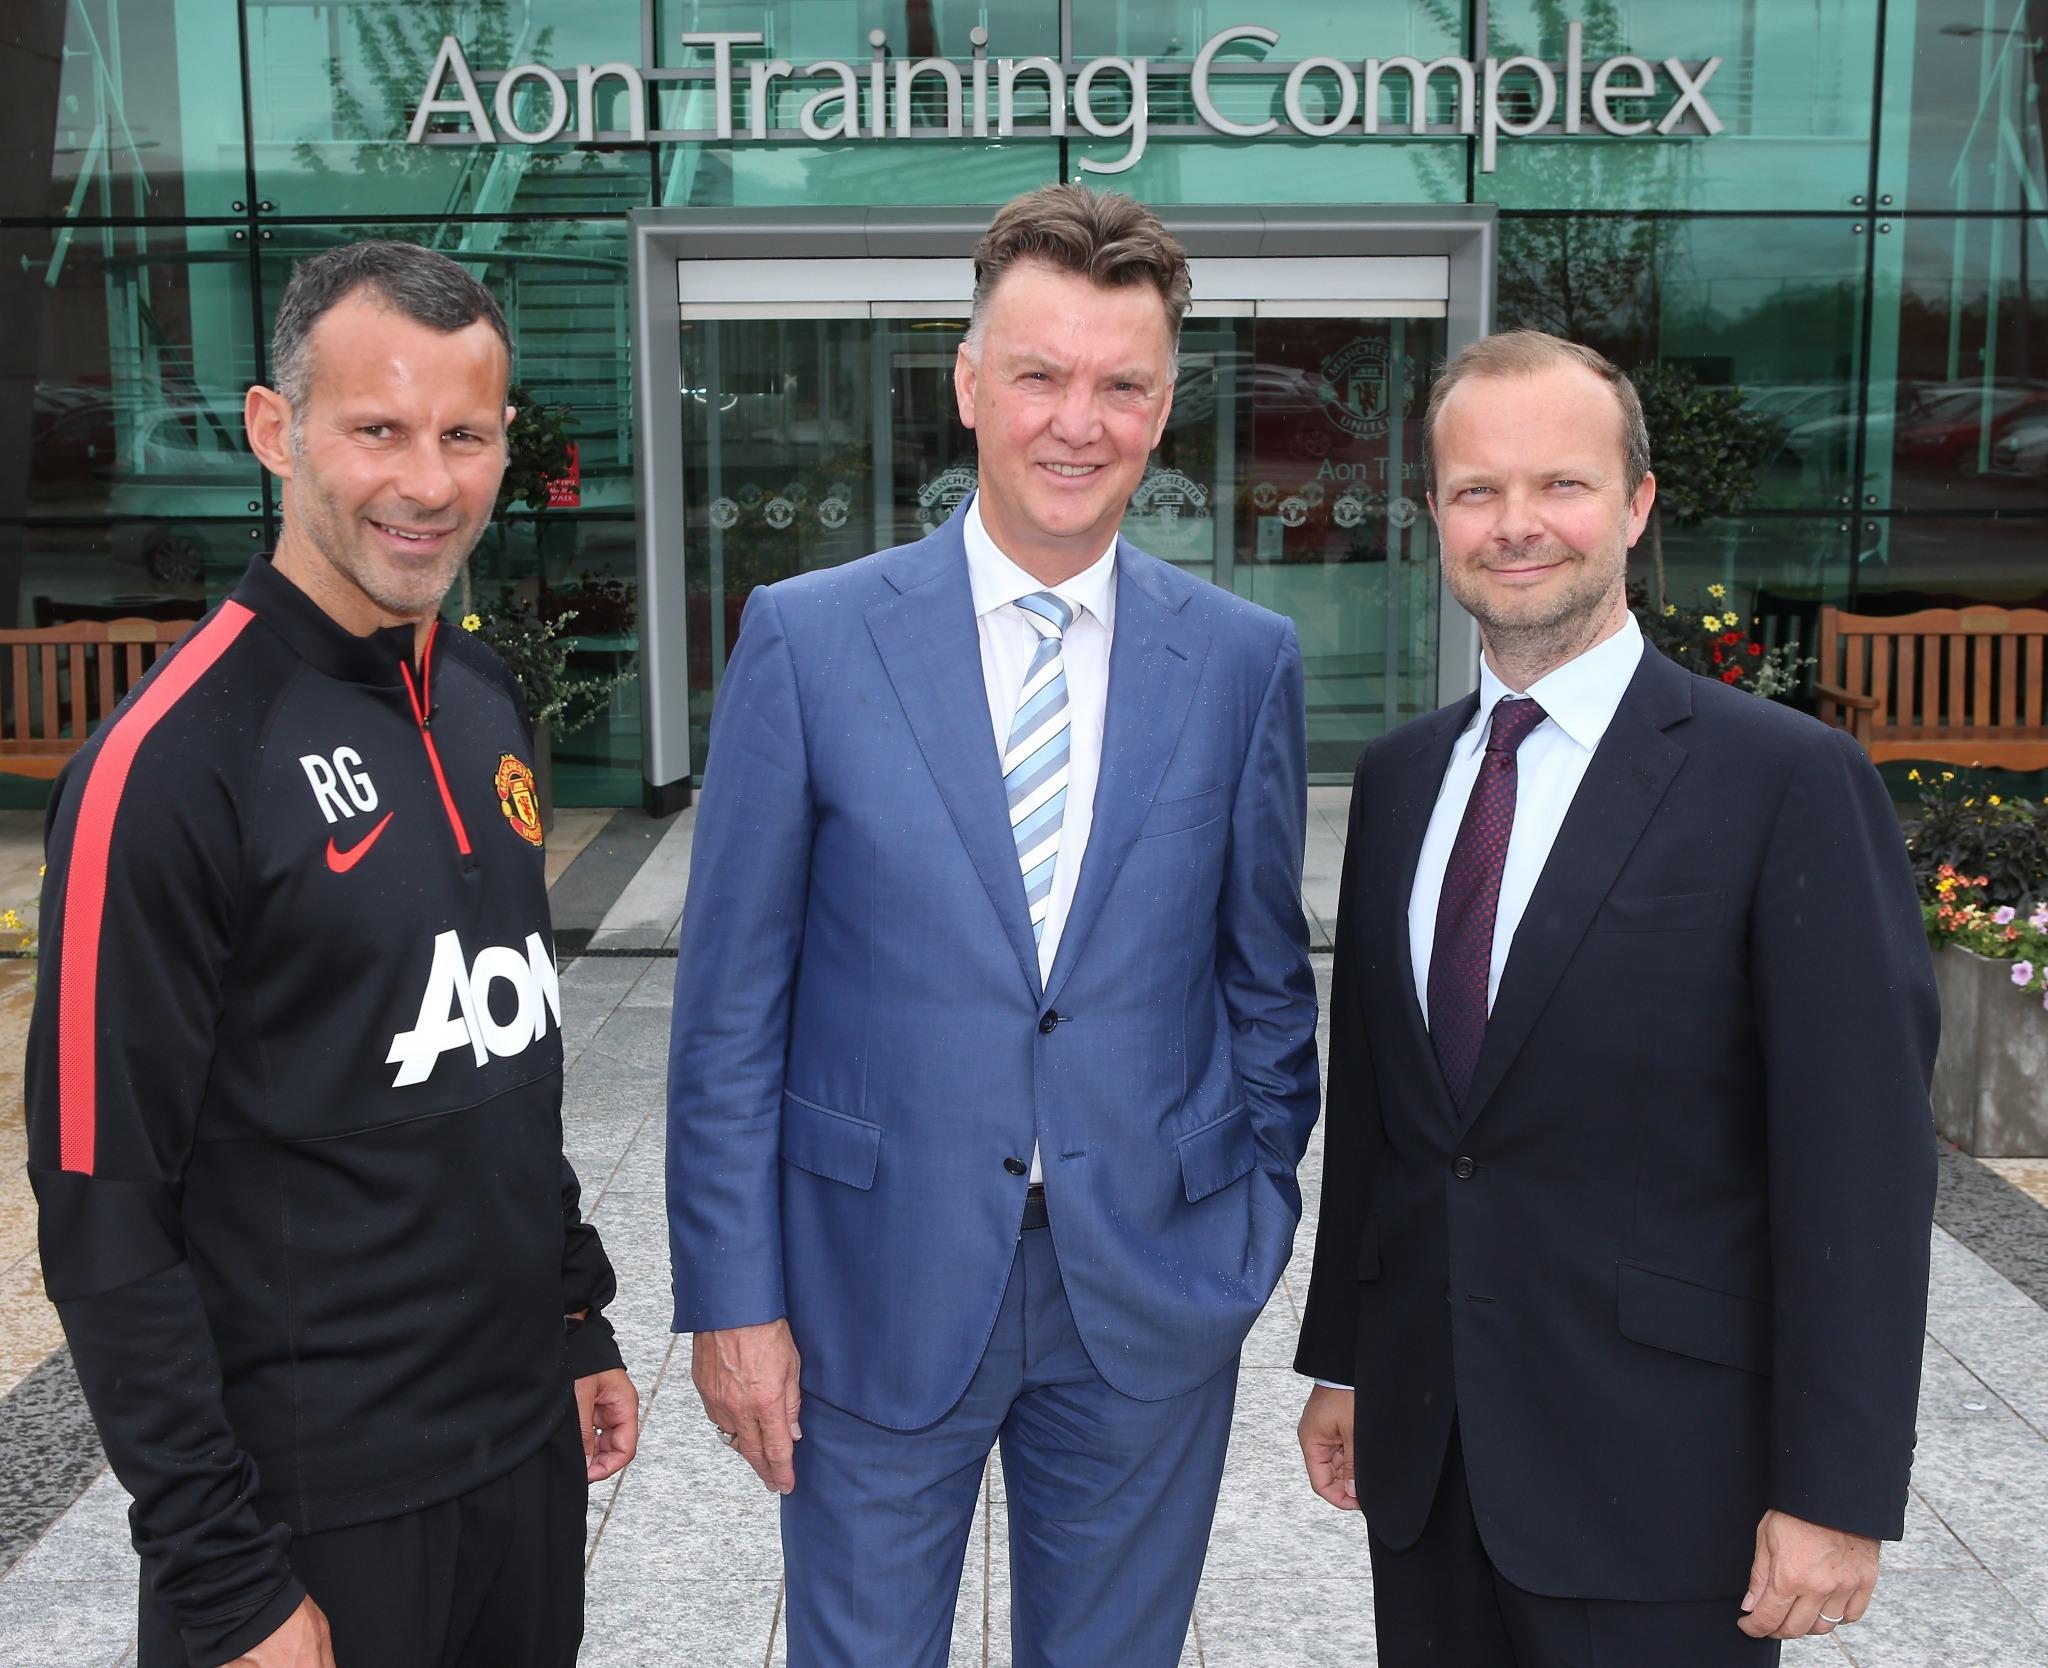 The Louis van Gaal era has begun! New Man United boss poses for pictures on first day at club